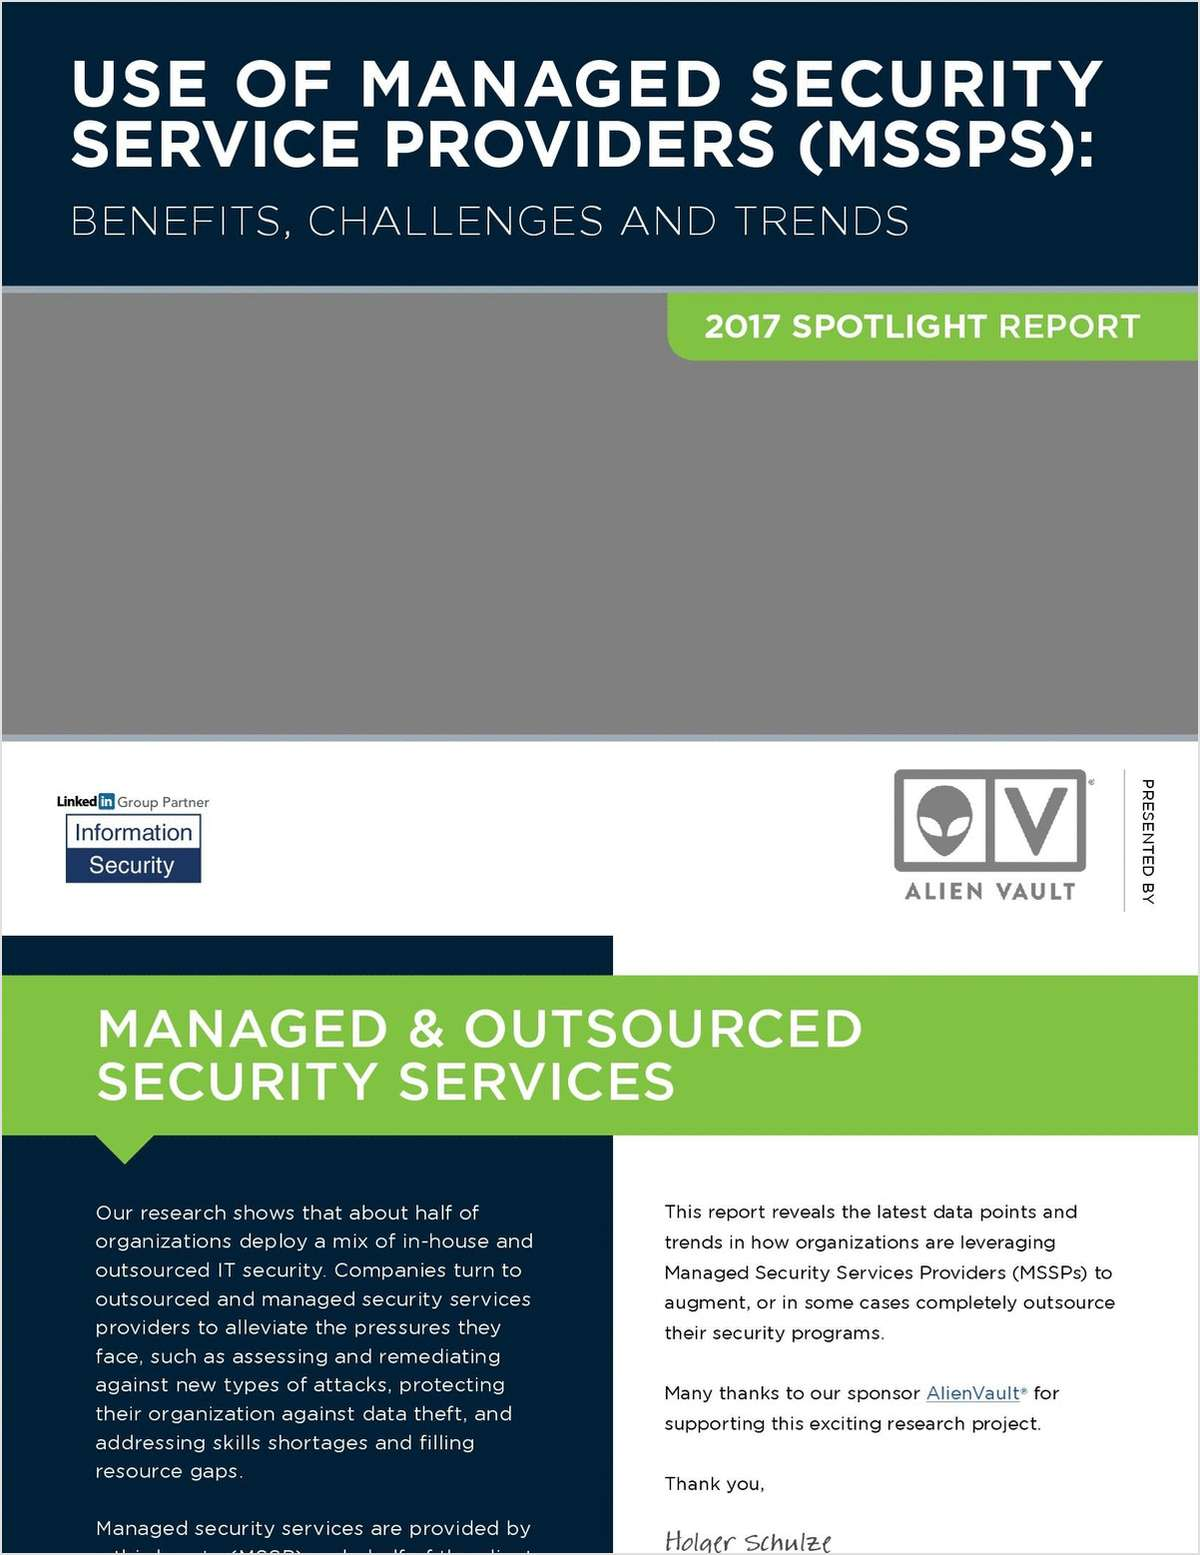 2017 Spotlight Report - Use of Managed Security Service Providers (MSSPS)